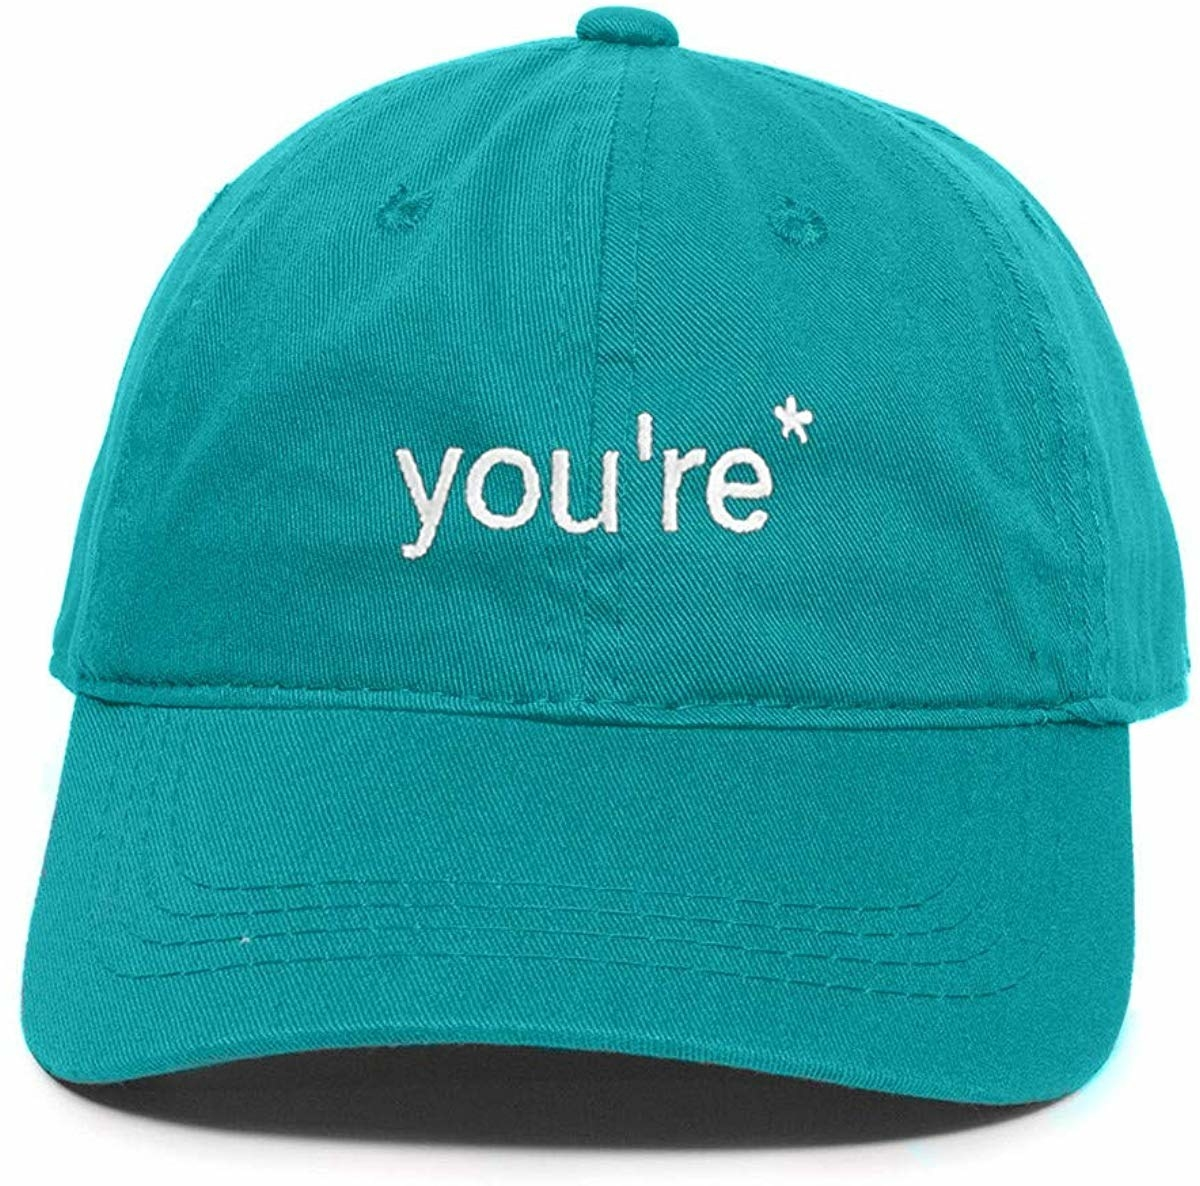 "teal baseball cap with white text that reads ""you're*"""